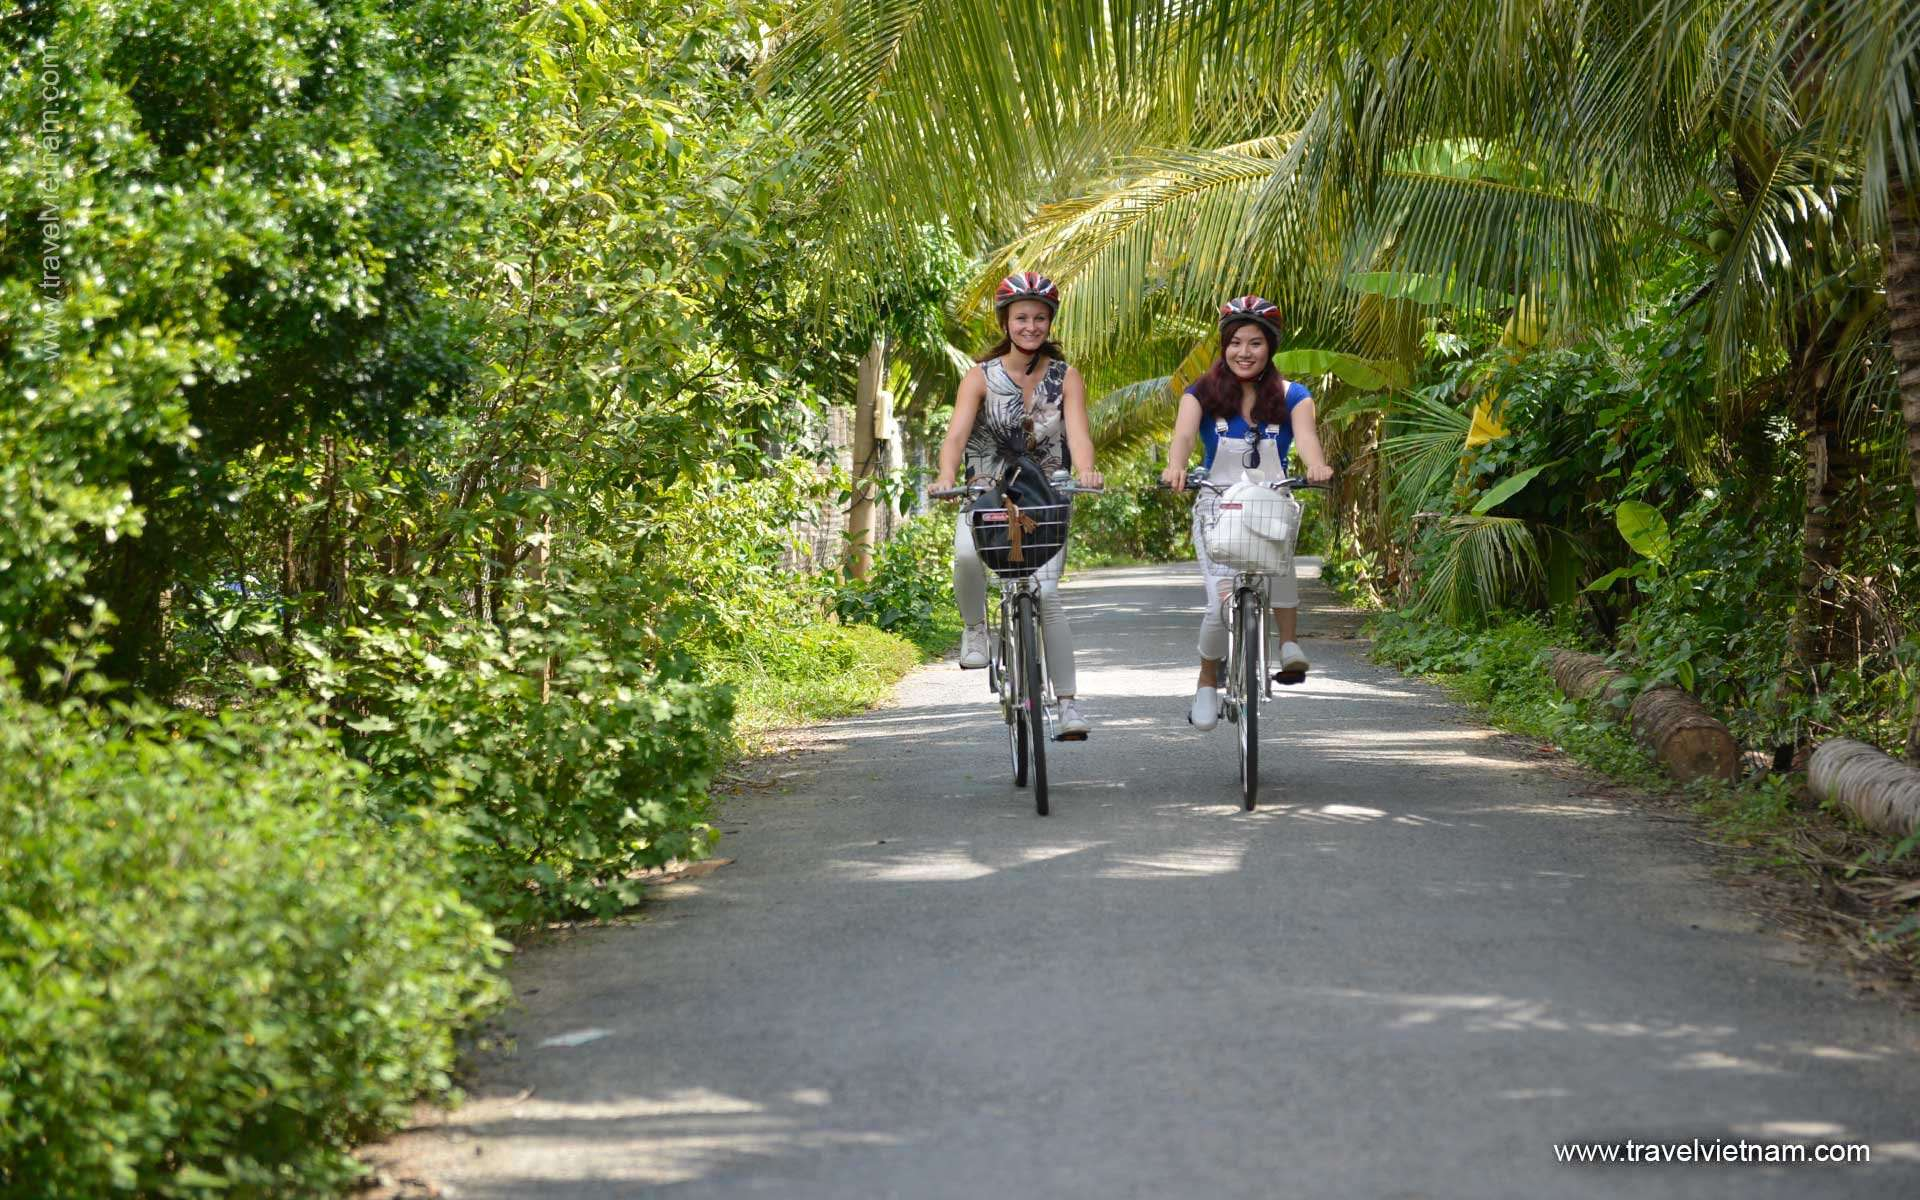 Biking Mekong Delta - 4 Days